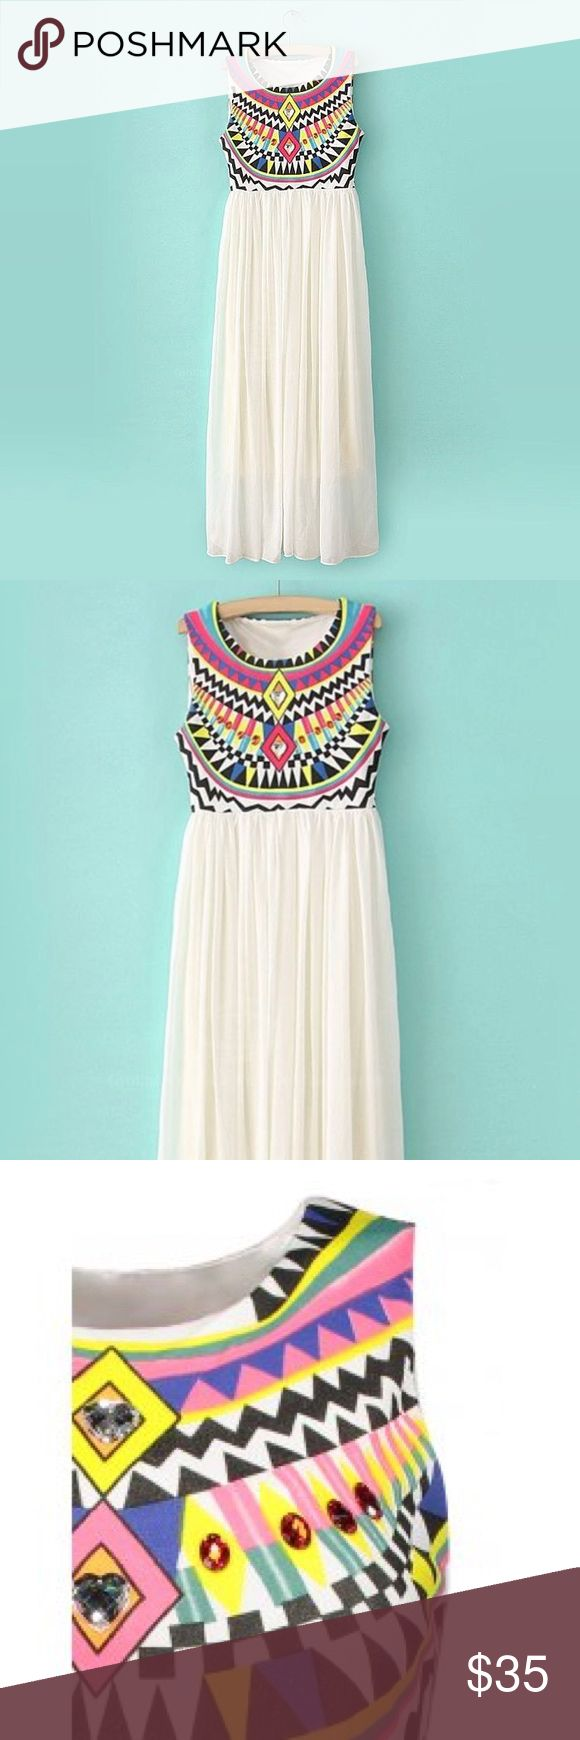 Bohemian White Flowy Aztec Midi Maxi Summer Dress Bohemian White Flowy Aztec Midi Maxi Summer Dress  This dress is super cute and comes to the middle of the calf on most - it's not quite a maxi dress (but may be on very short people). There's stones along the printed aztec front, some are hearts, it's very cute for summer and would be perfect for a young boho chick!   Brand new without tags  Size small but the size tag fell off  Please ask all questions before purchasing! Dresses Midi